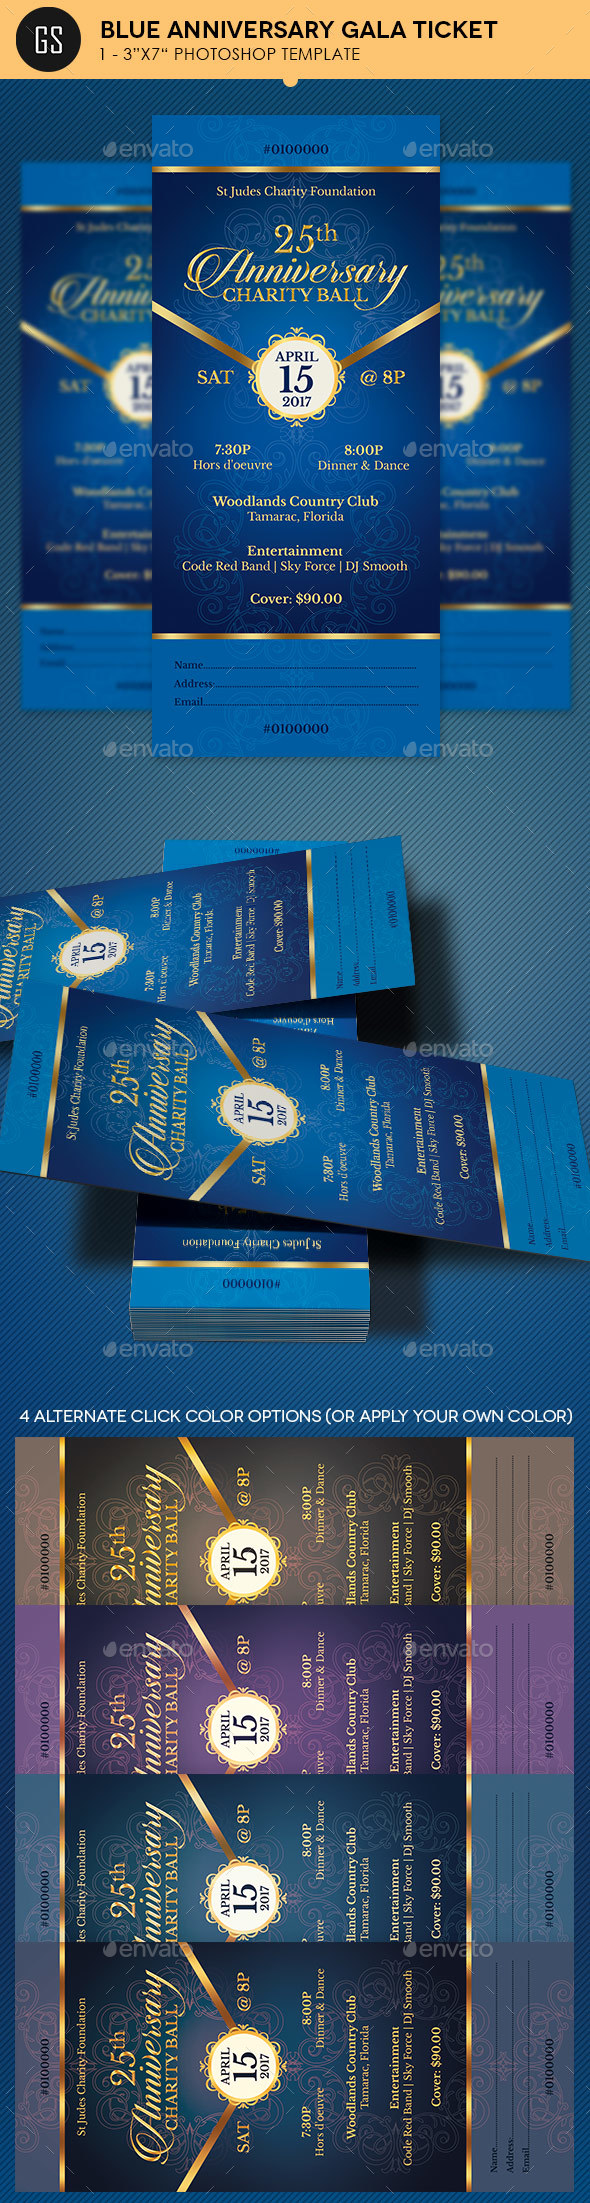 Blue Anniversary Gala Ticket Template - Miscellaneous Print Templates